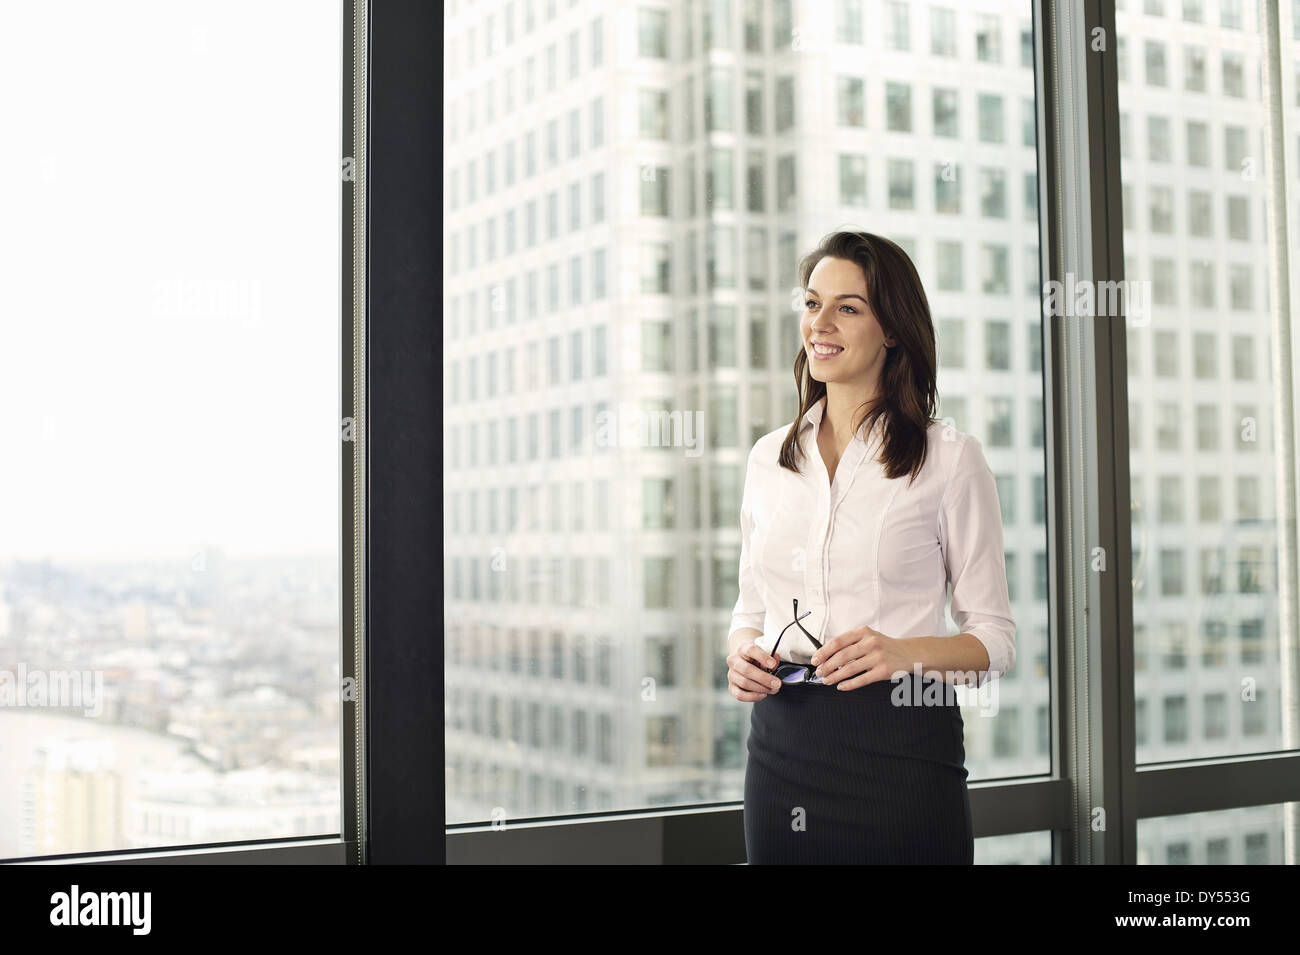 Portrait of young businesswoman looking out of office window - Stock Image